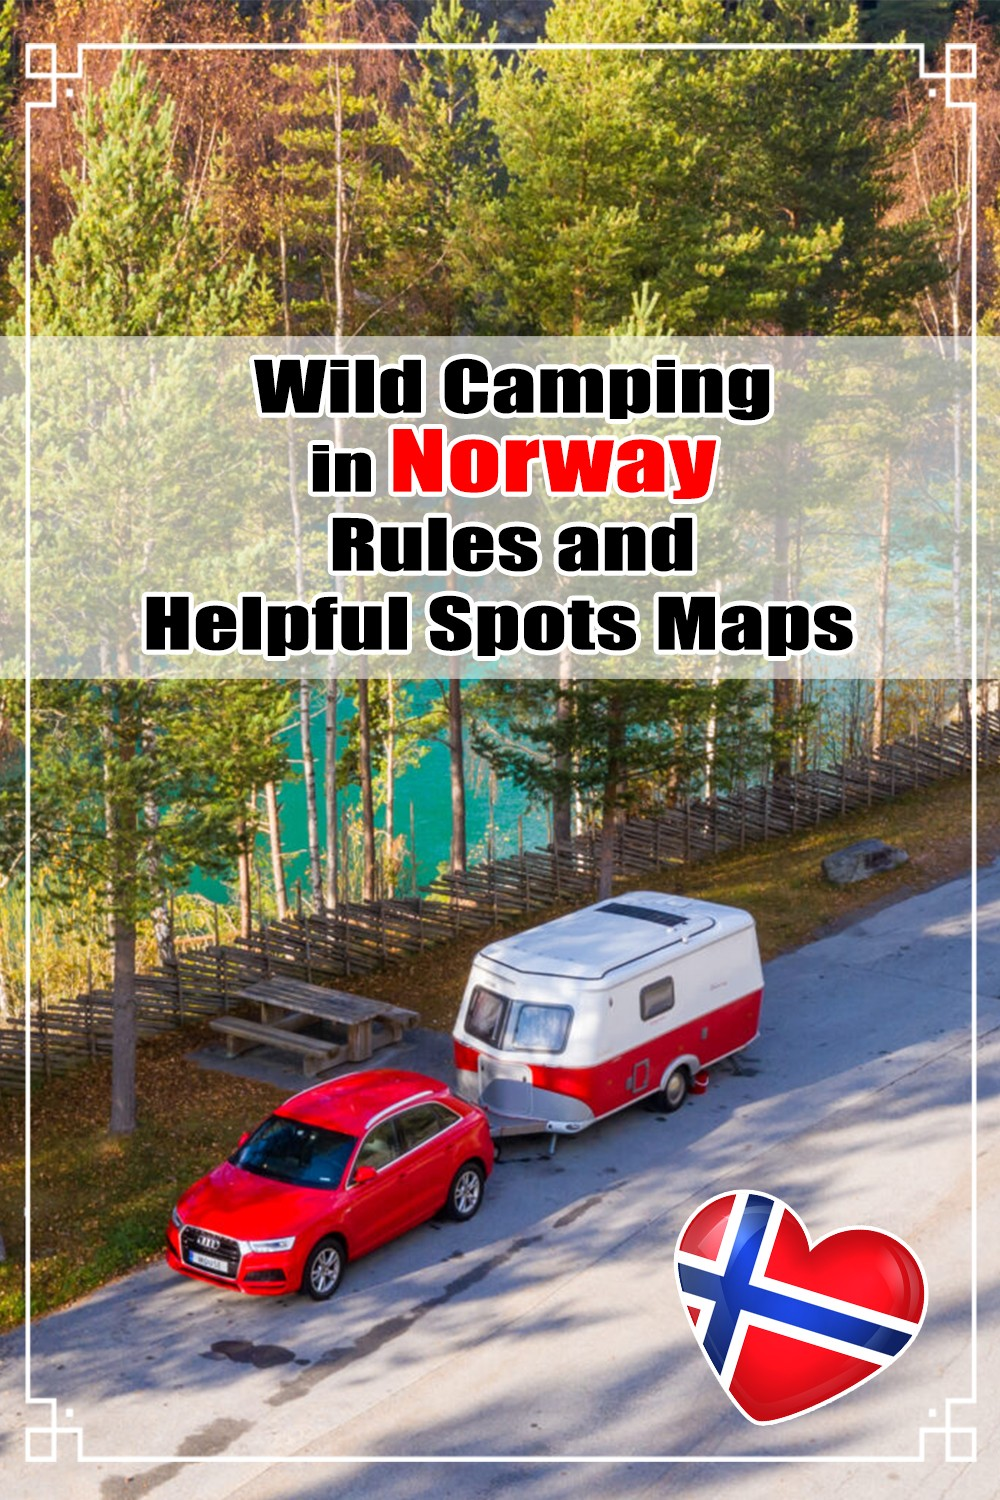 Wild Camping Rules and Maps